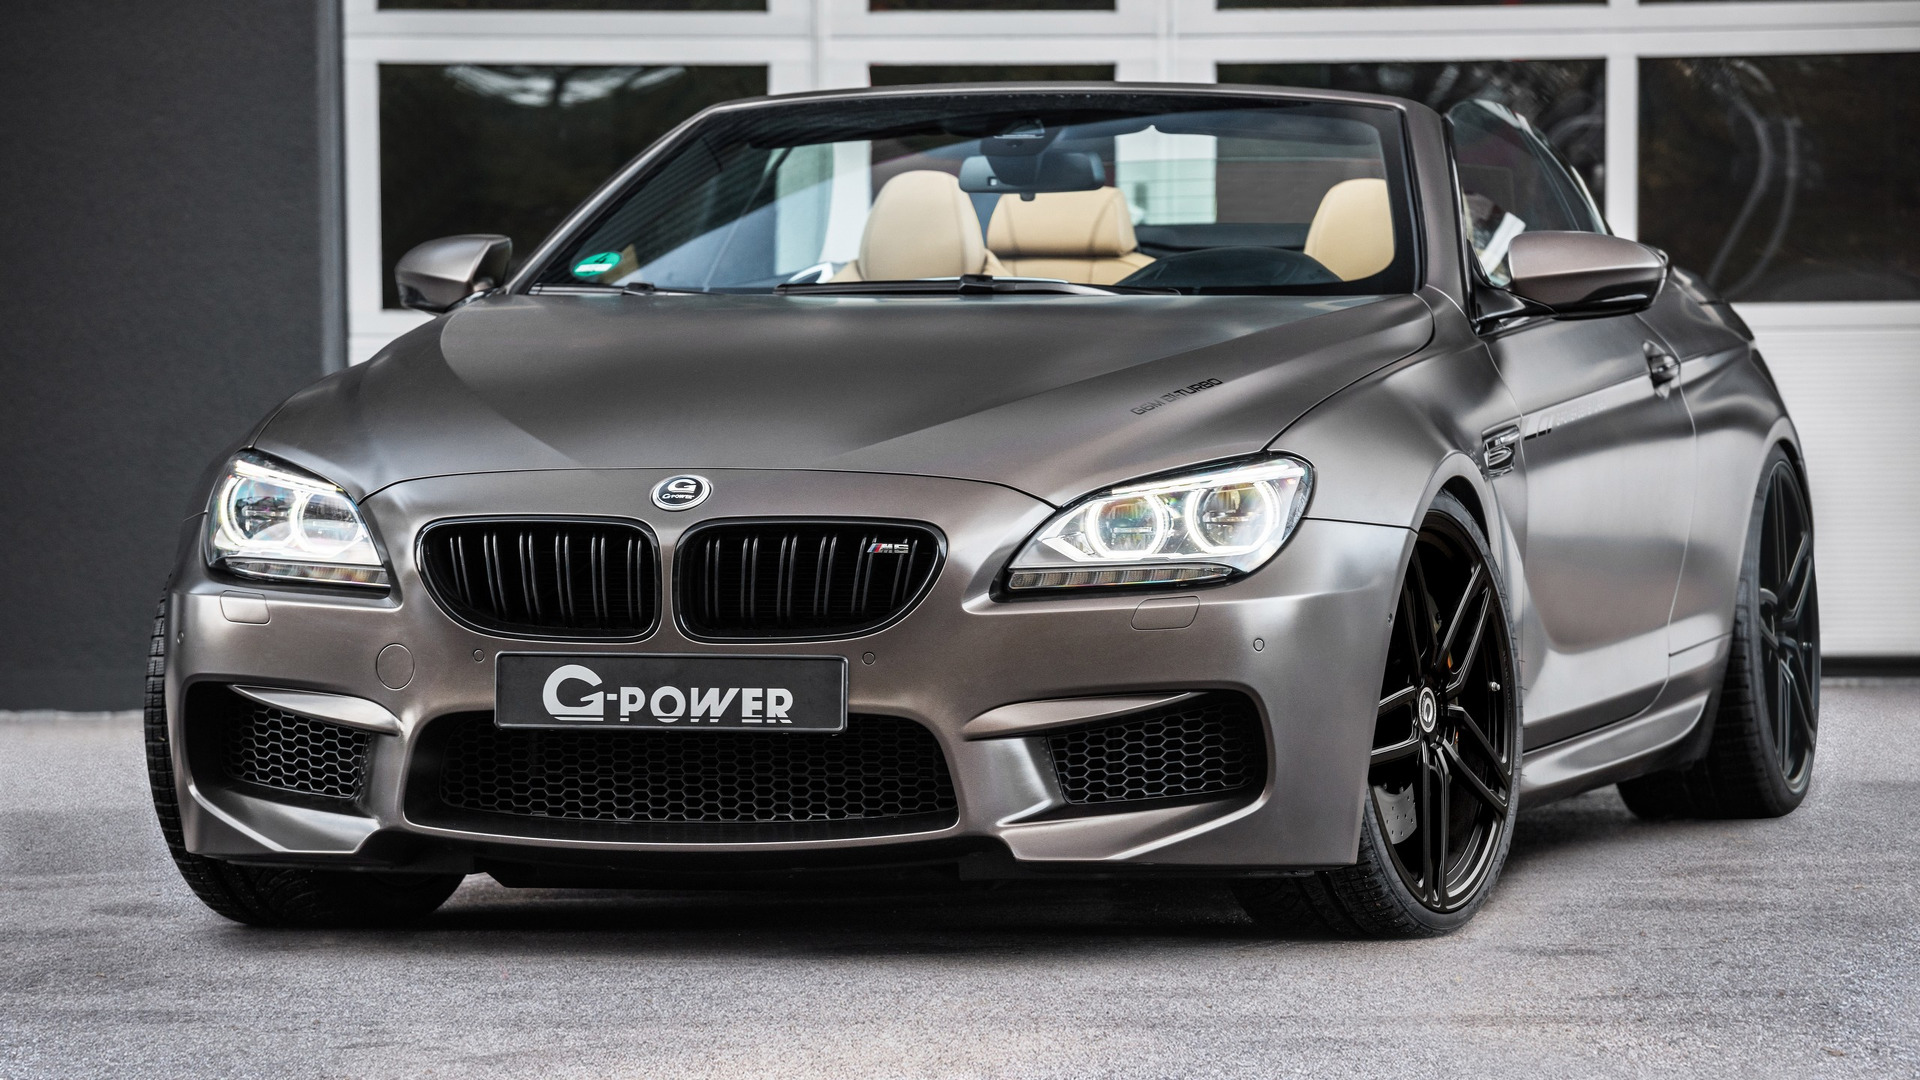 Overkill G Power Gives 800 Horsepower To Bmw M6 Convertible